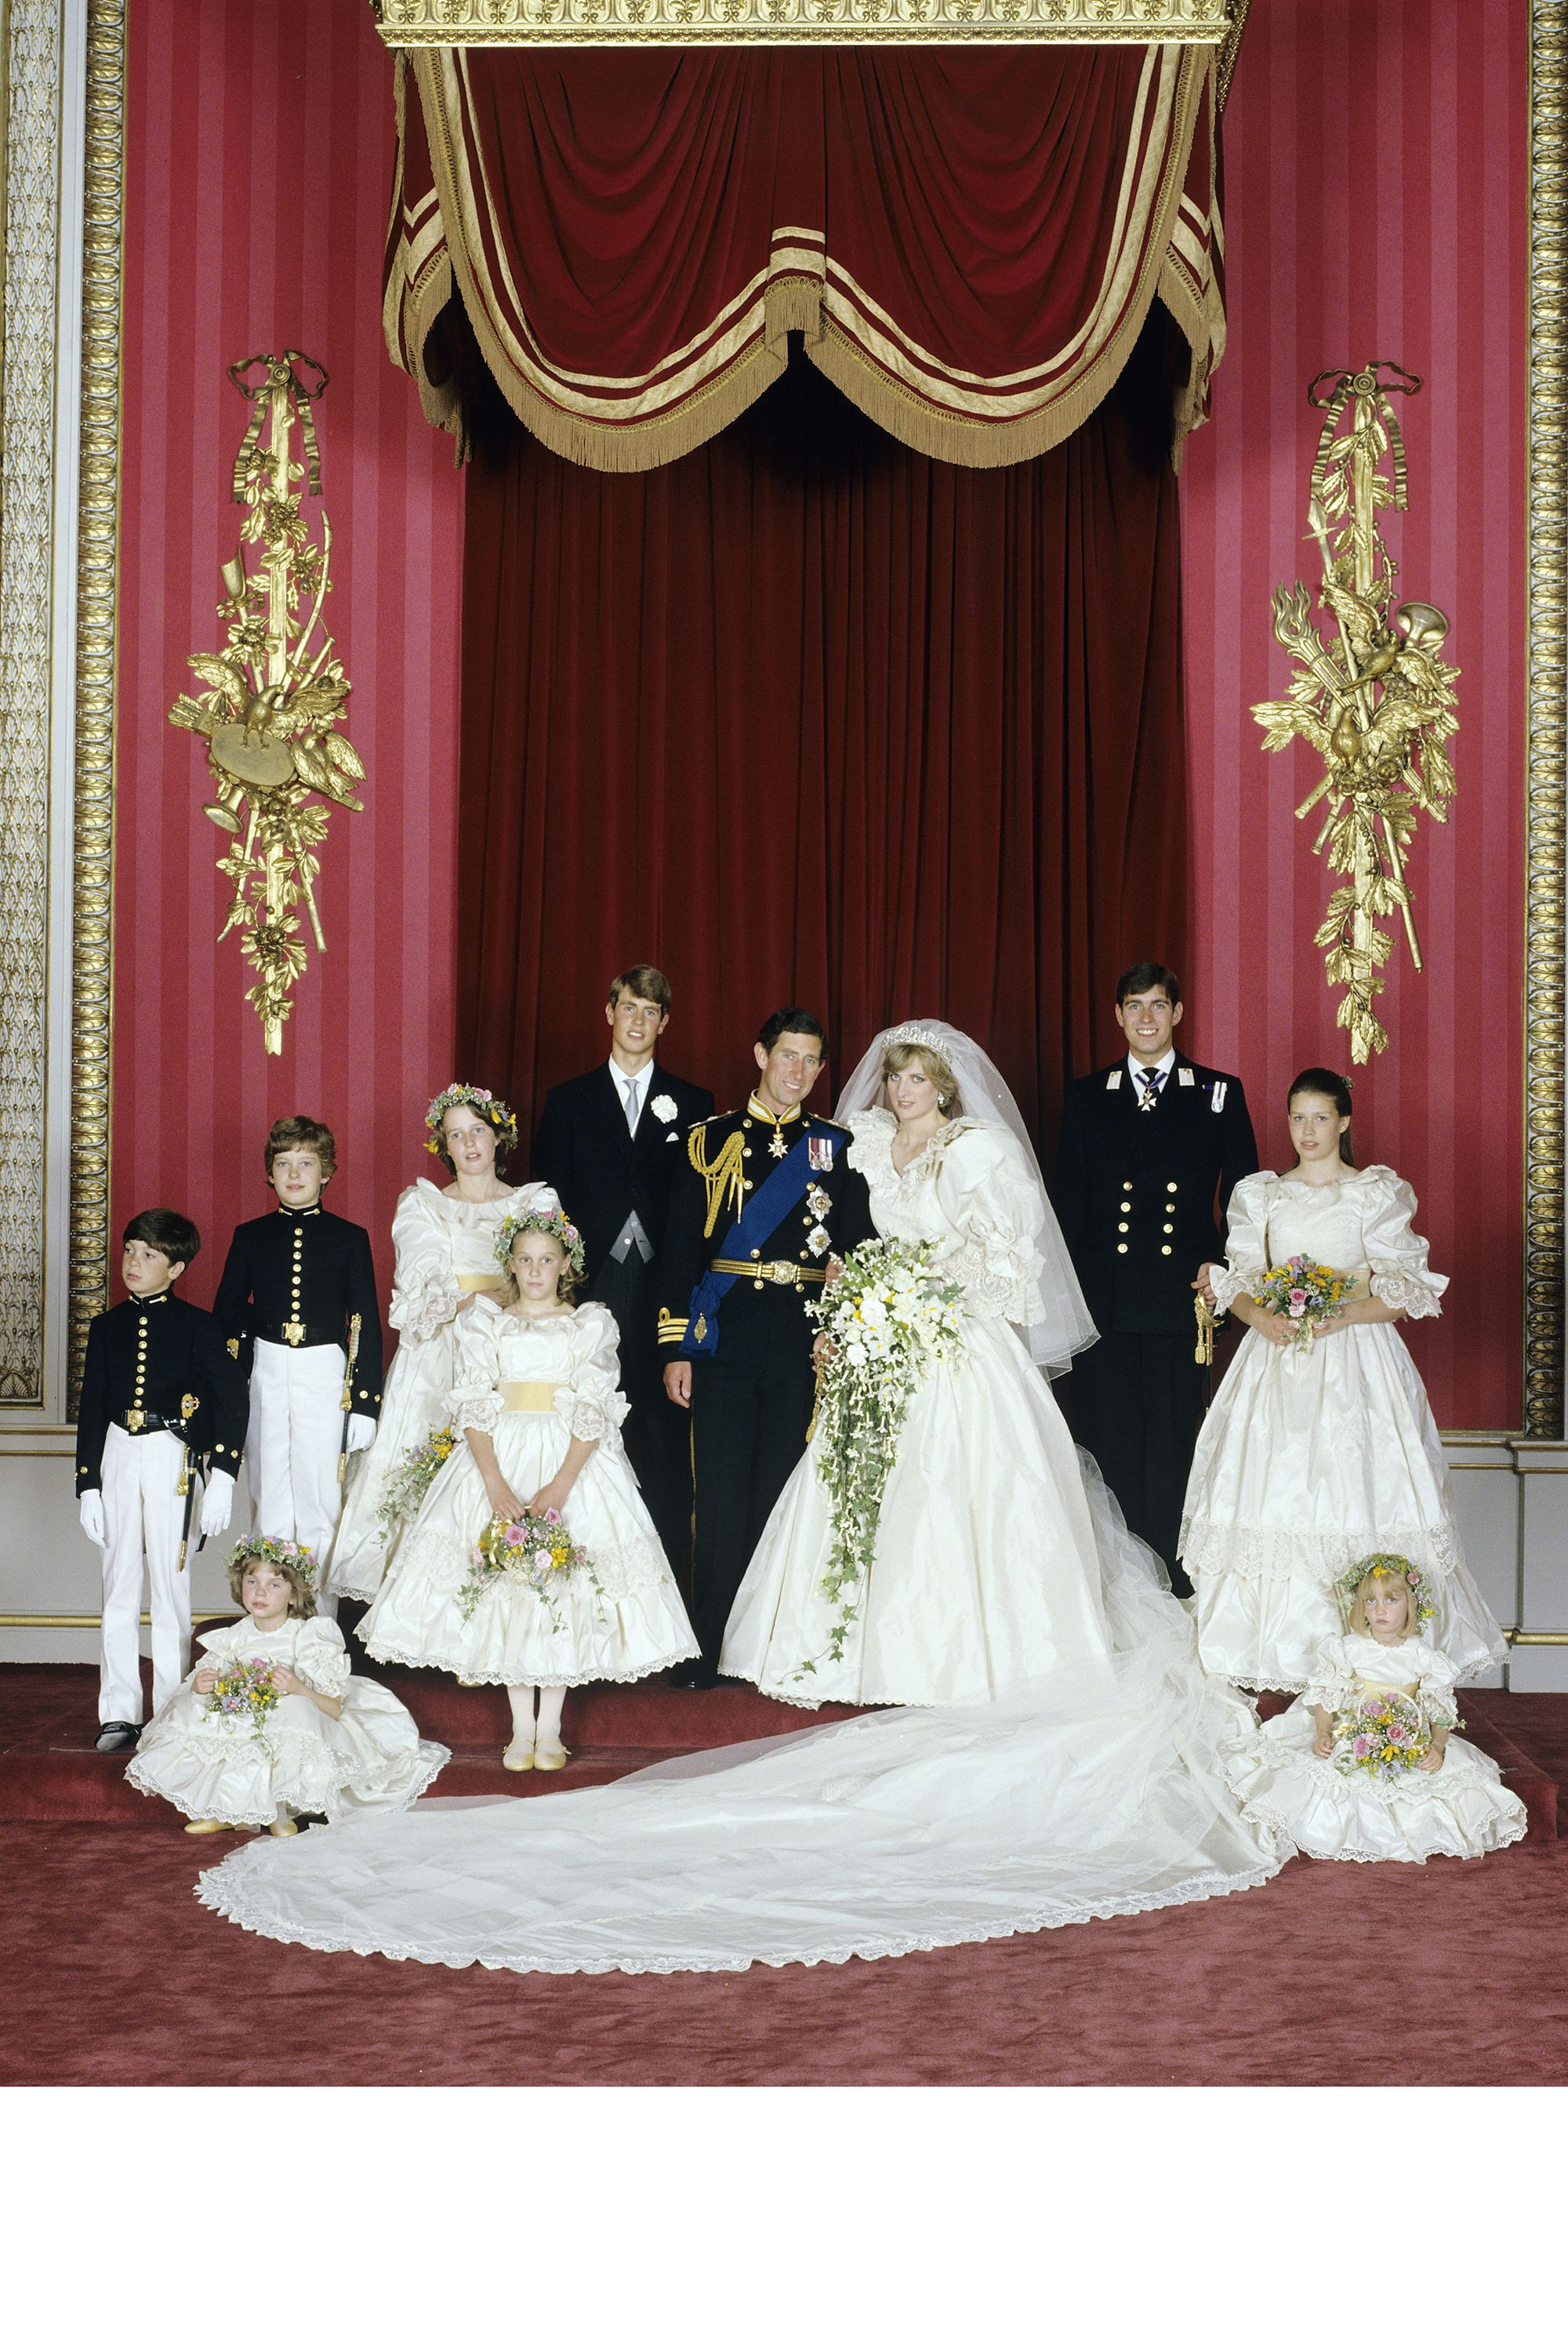 Princess Diana S Wedding Photo Retrospective Pictures From